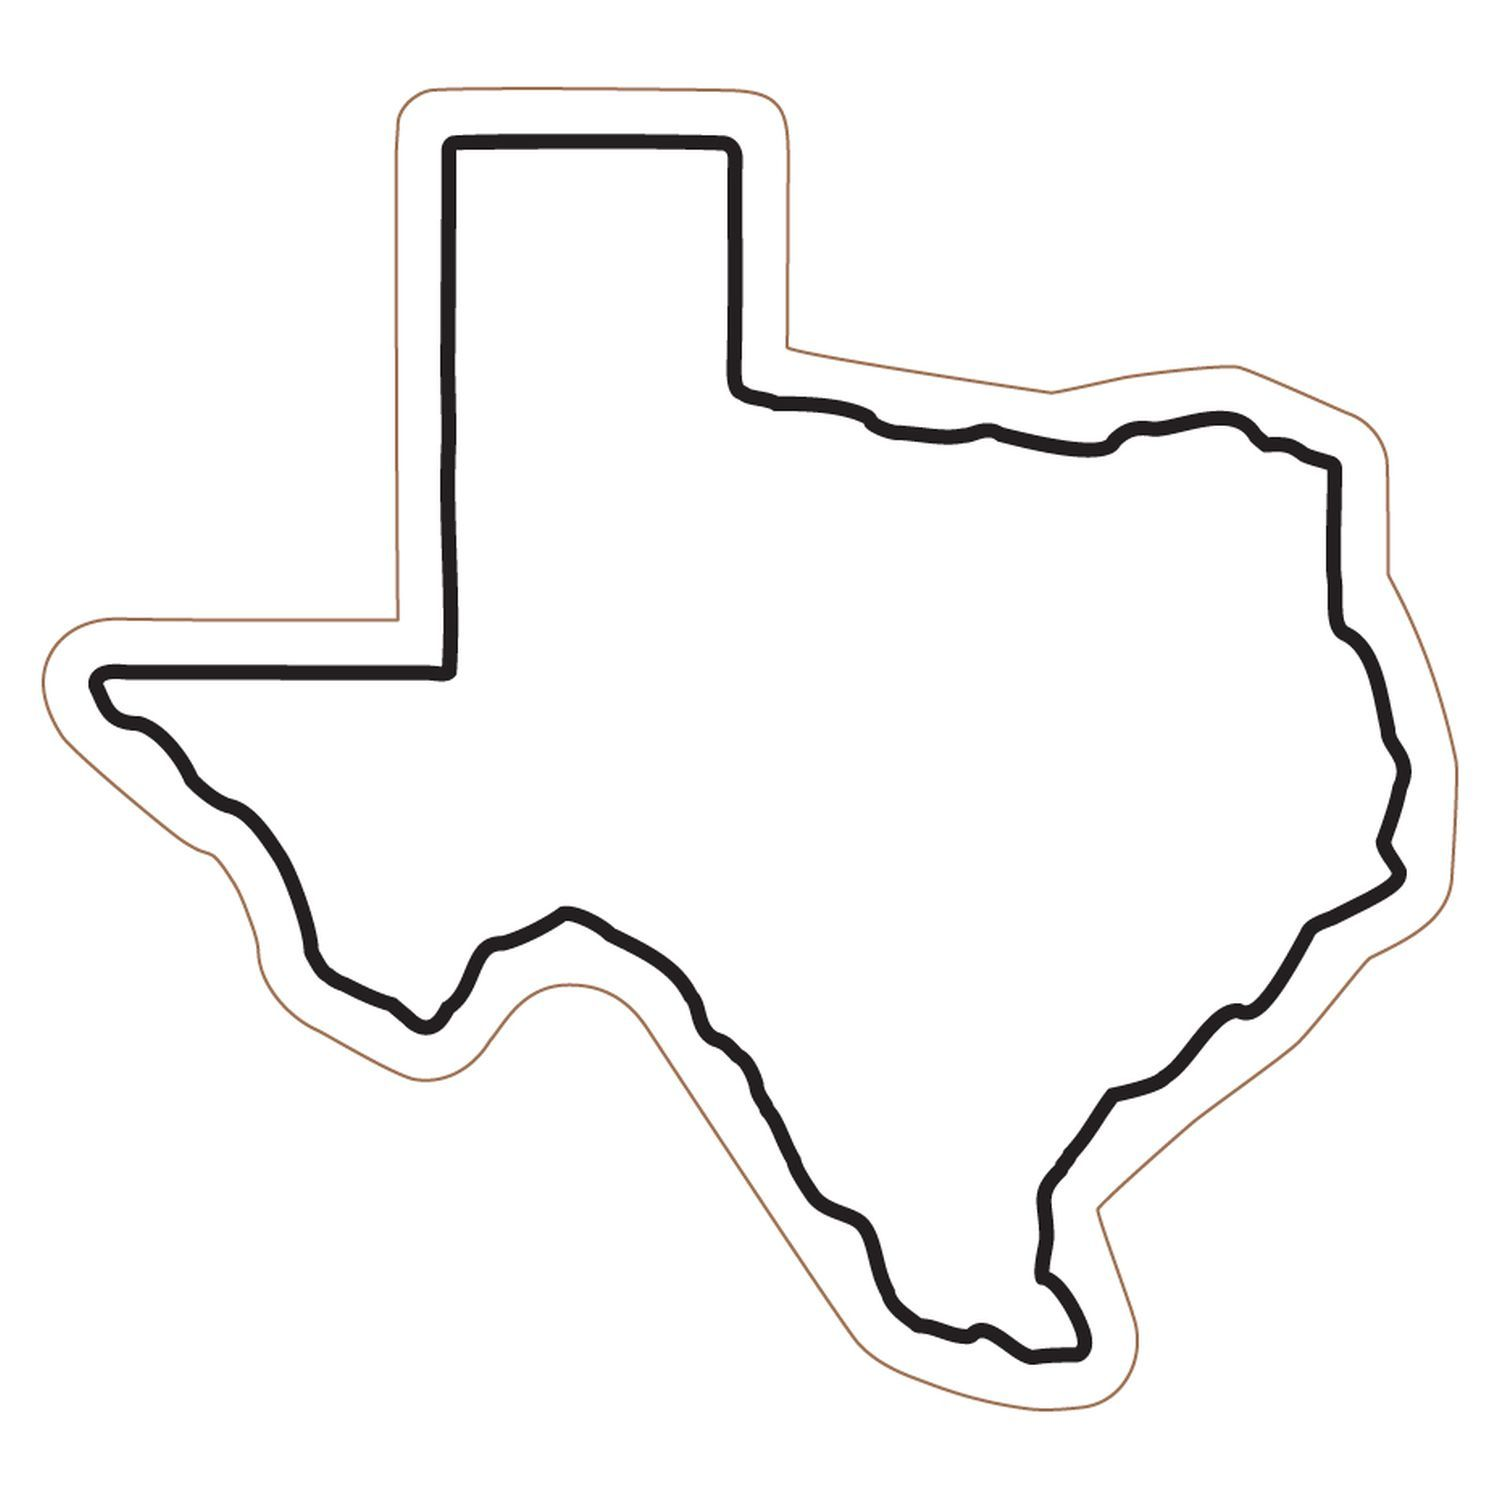 1500x1500 State Of Texas Outline Clip Art Clipartfest